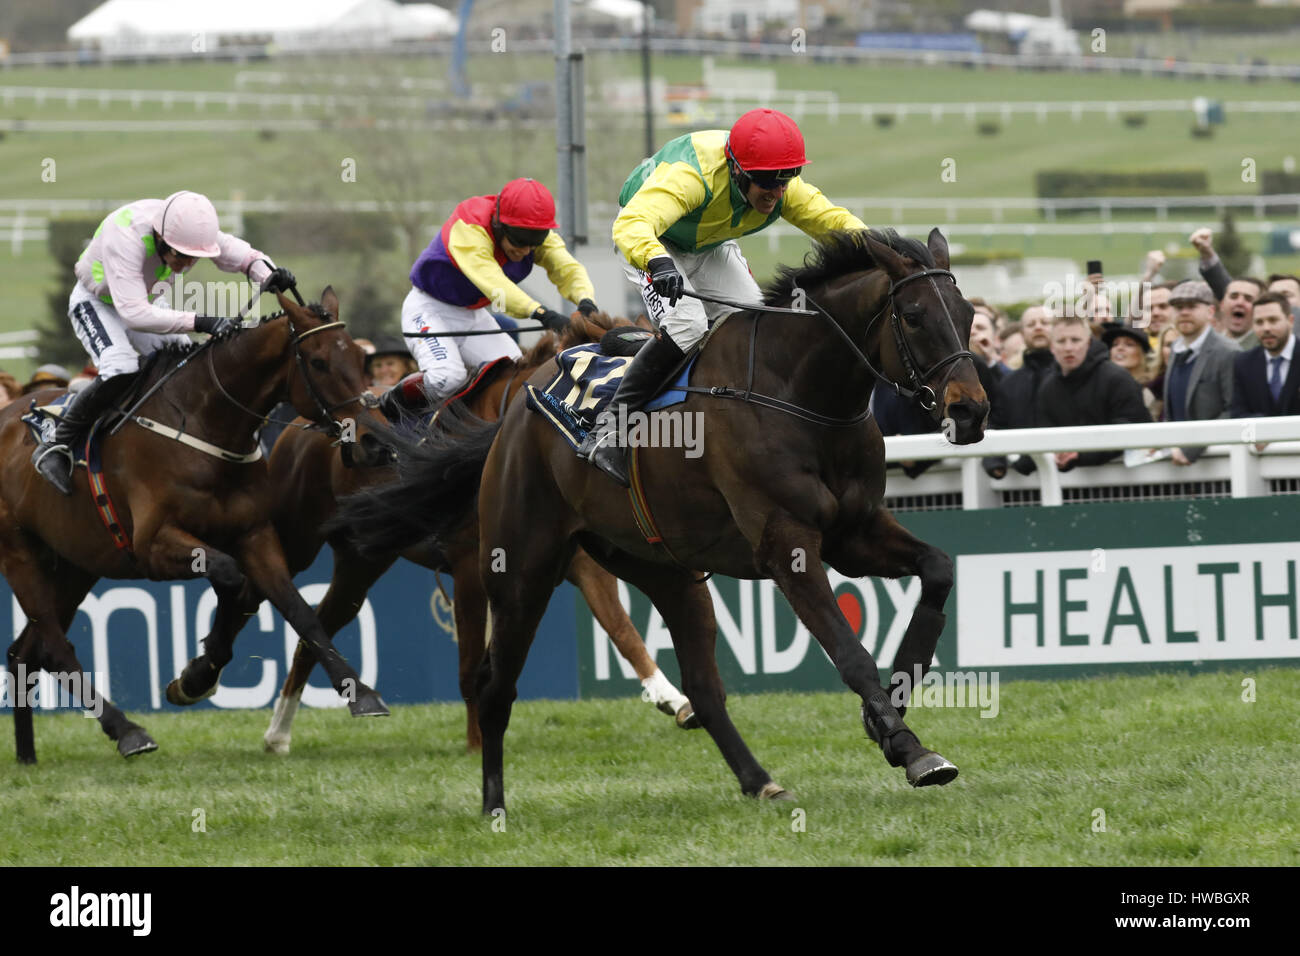 17.03.2017 - Cheltenham; Sizing John (yellow-green) ridden by Robbie Power wins the Timico Cheltenham Gold Cup Chase (Grade 1) at Cheltenham-Racecourse/Great Britain. Credit: Lajos-Eric Balogh/turfstock.com Stock Photo